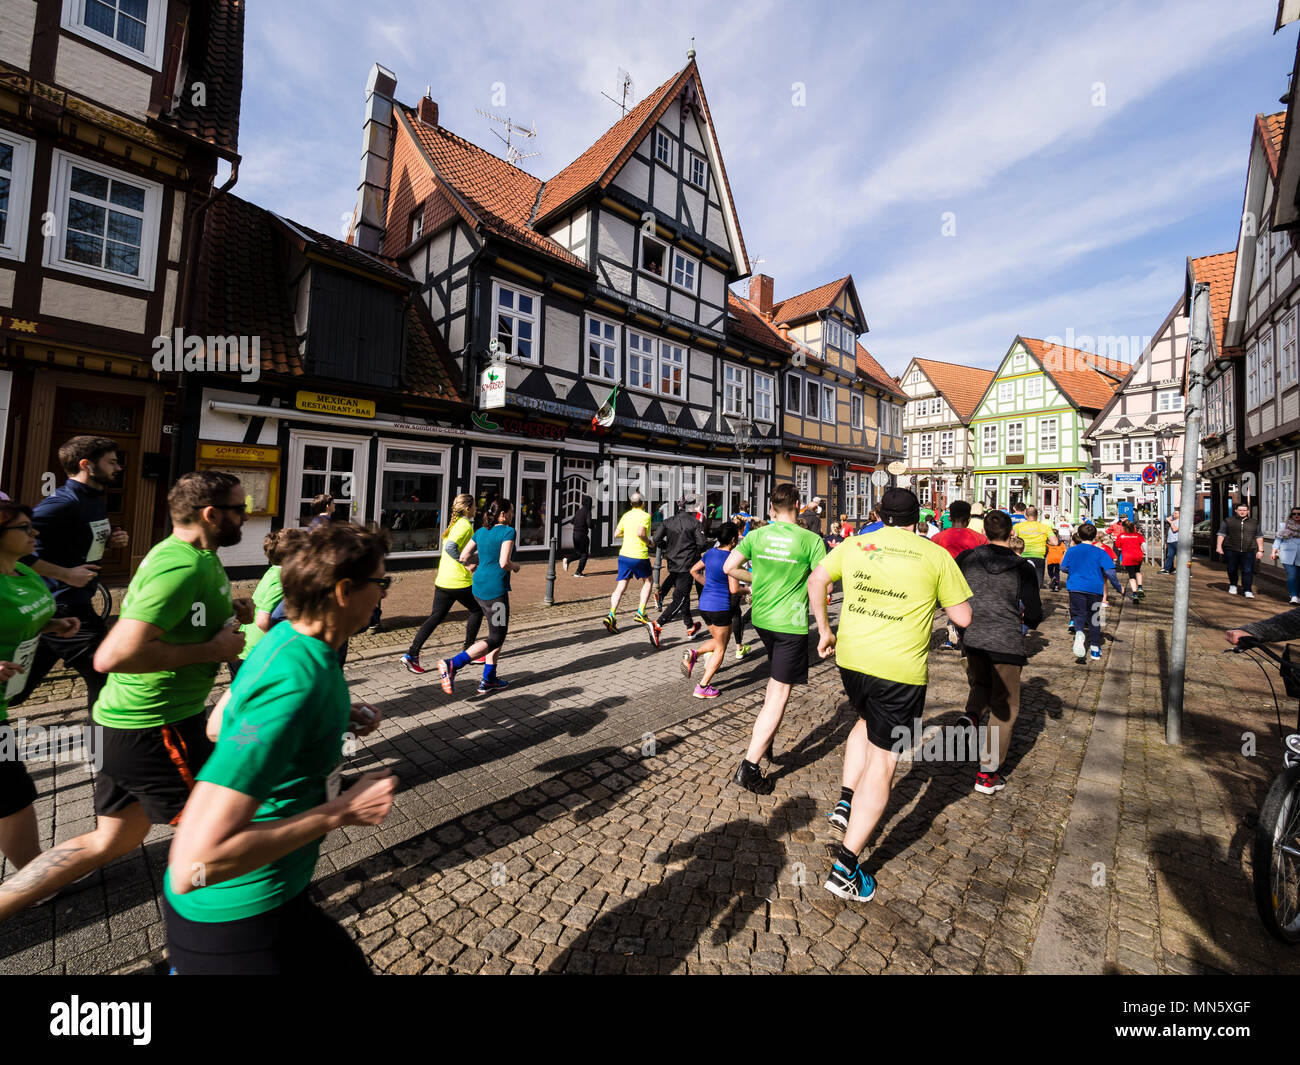 Running event 'Wasalauf', downtown Celle, along half-timbered houses, Celle, Germany Stock Photo